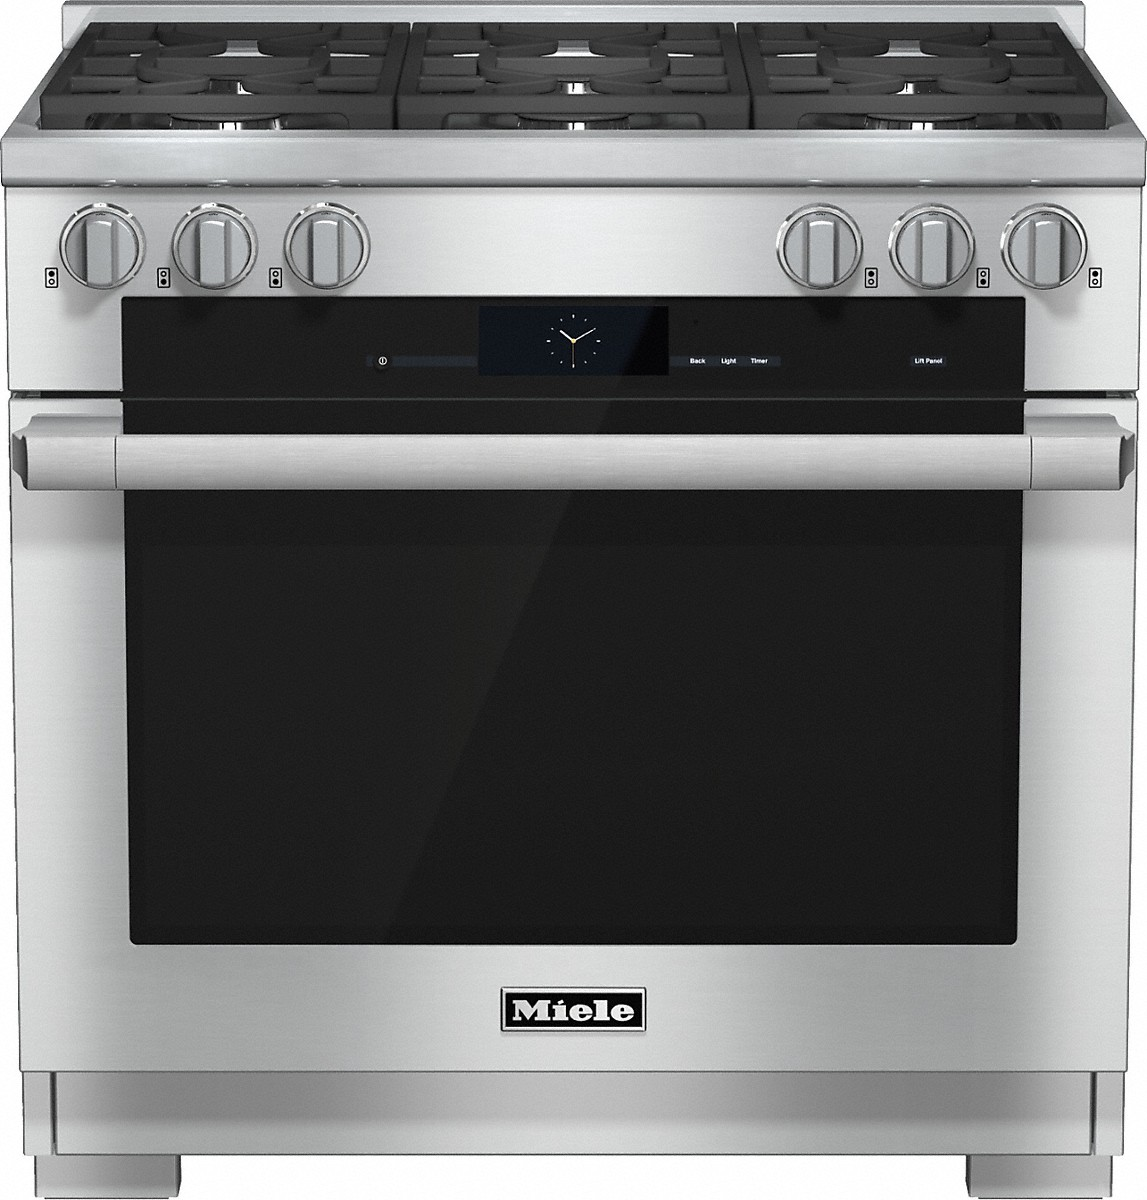 Model: 25193452USA | 36 inch rangeDual Fuel with M Touch controls, Moisture Plus and M Pro dual stacked burners